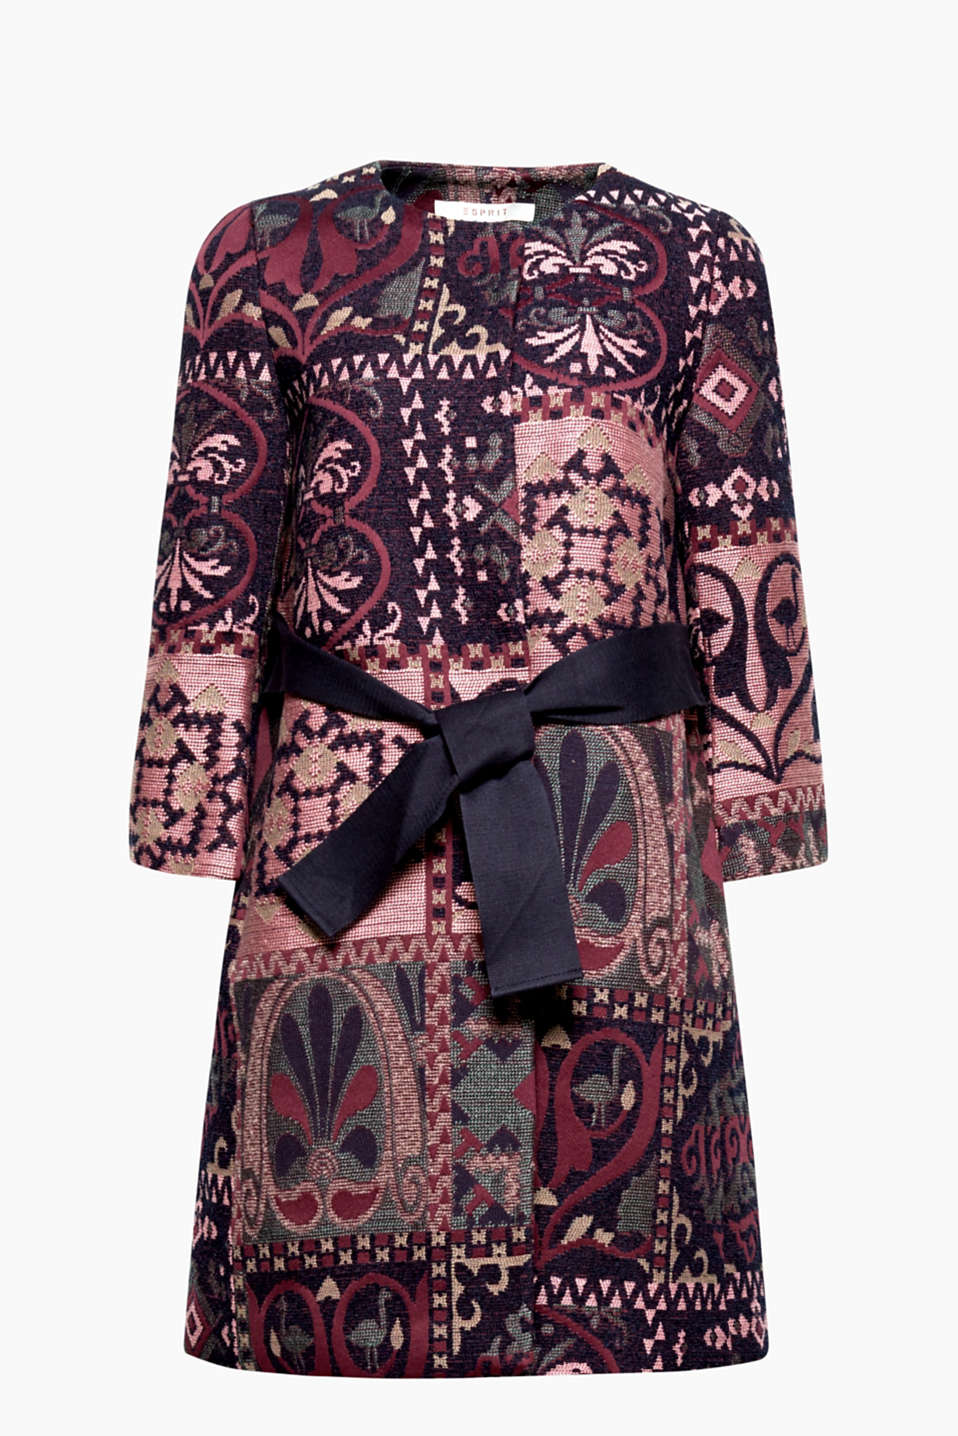 A true gem: this coat with an opulent jacquard pattern and wide tie-around belt will be a highlight of your wardrobe!